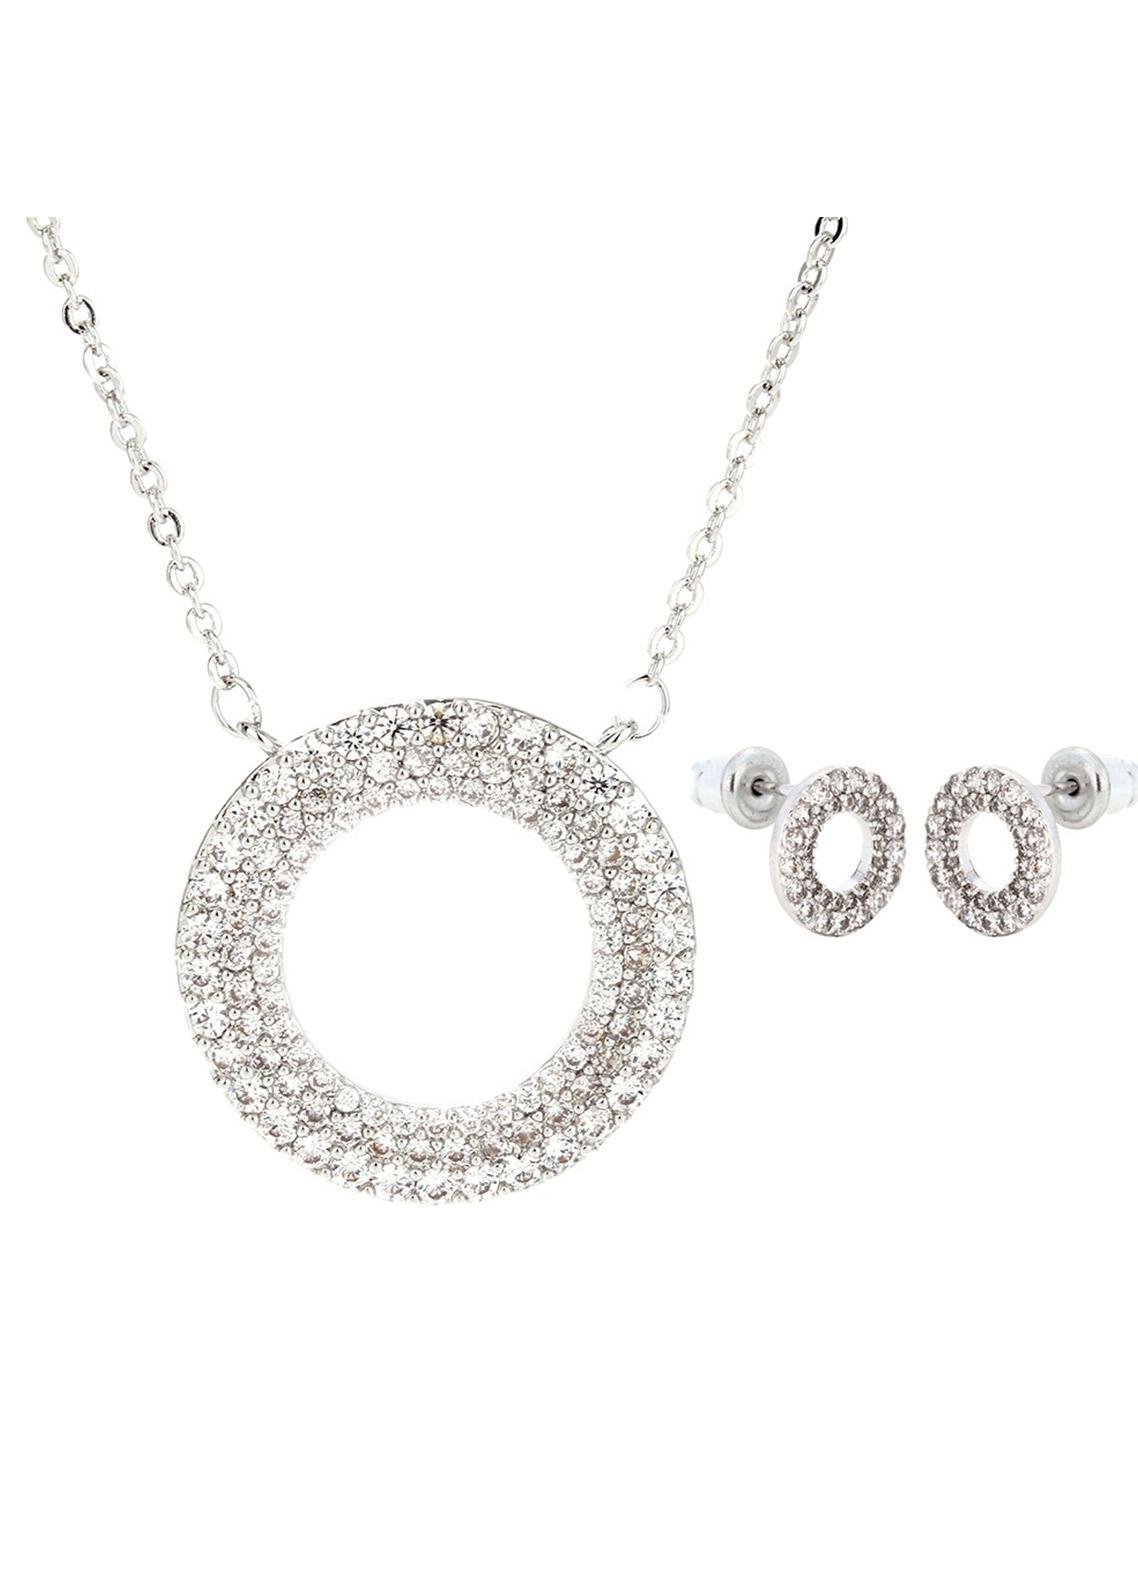 Anna Grace London by Silk Avenue Silver Plated Crystal Circle Necklace & Earrings Jewelry Set AGNE012 - Ladies Jewellery